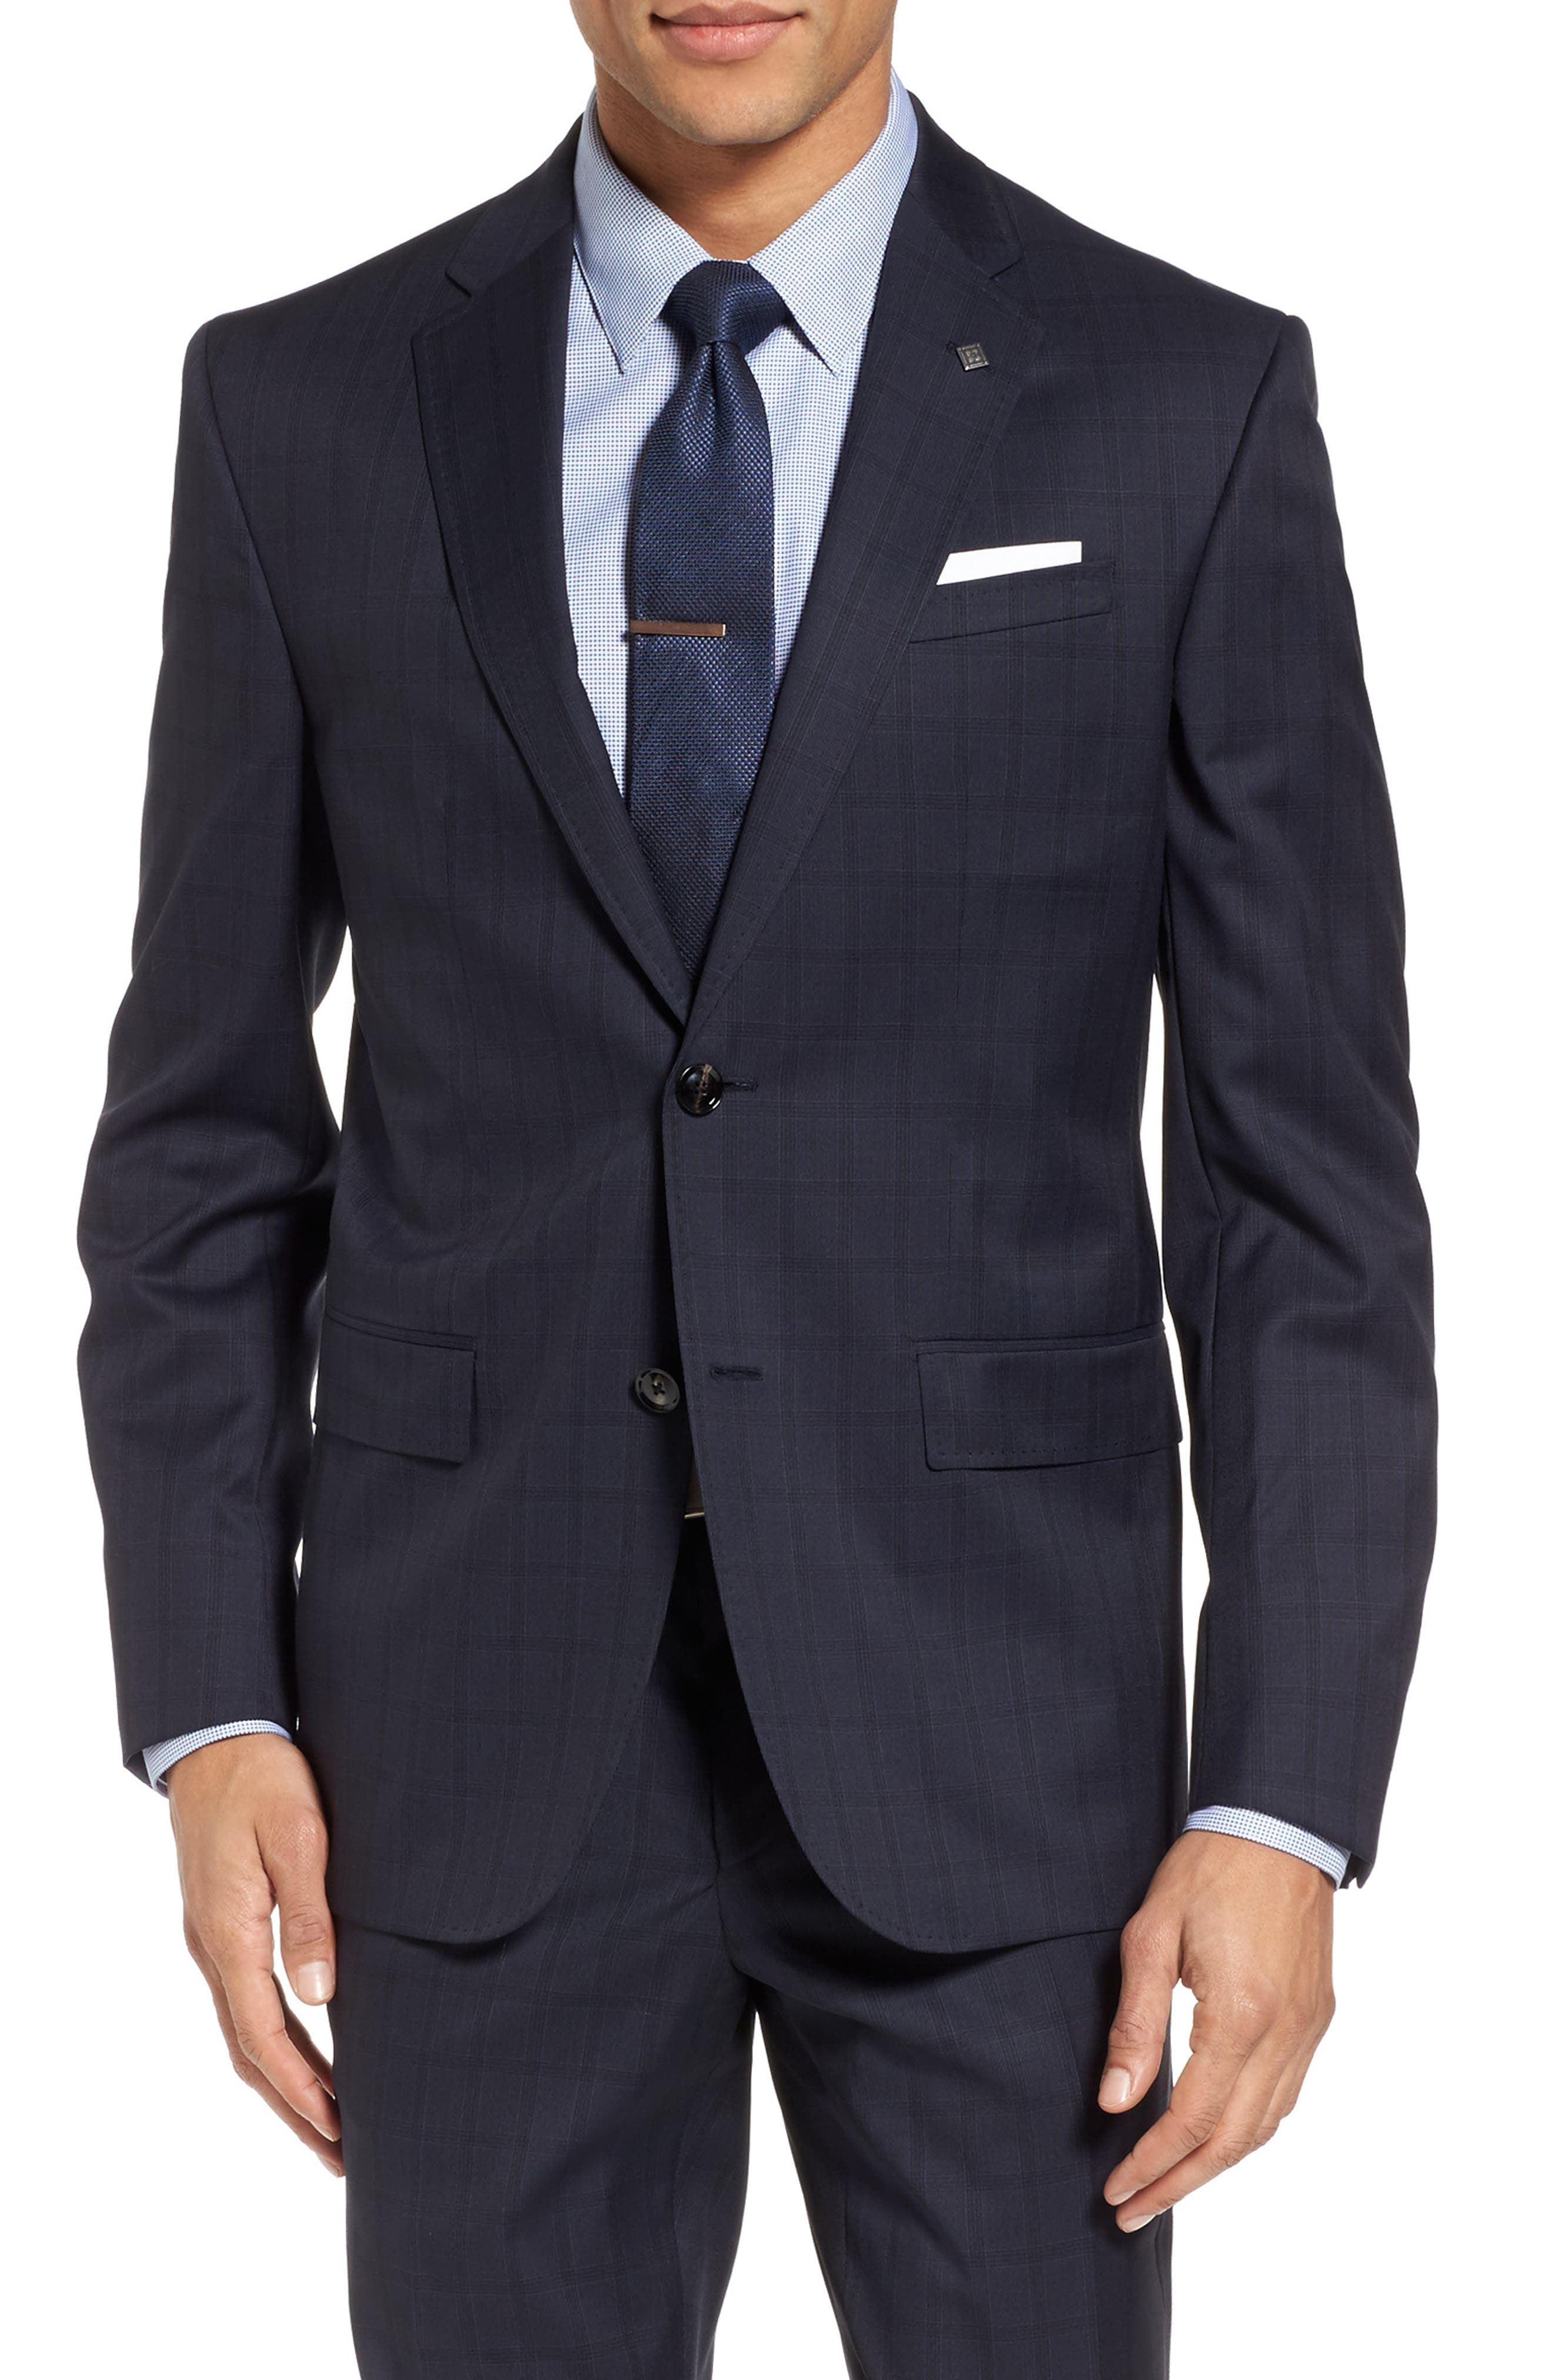 Jay Trim Fit Check Wool Suit,                             Alternate thumbnail 5, color,                             Navy